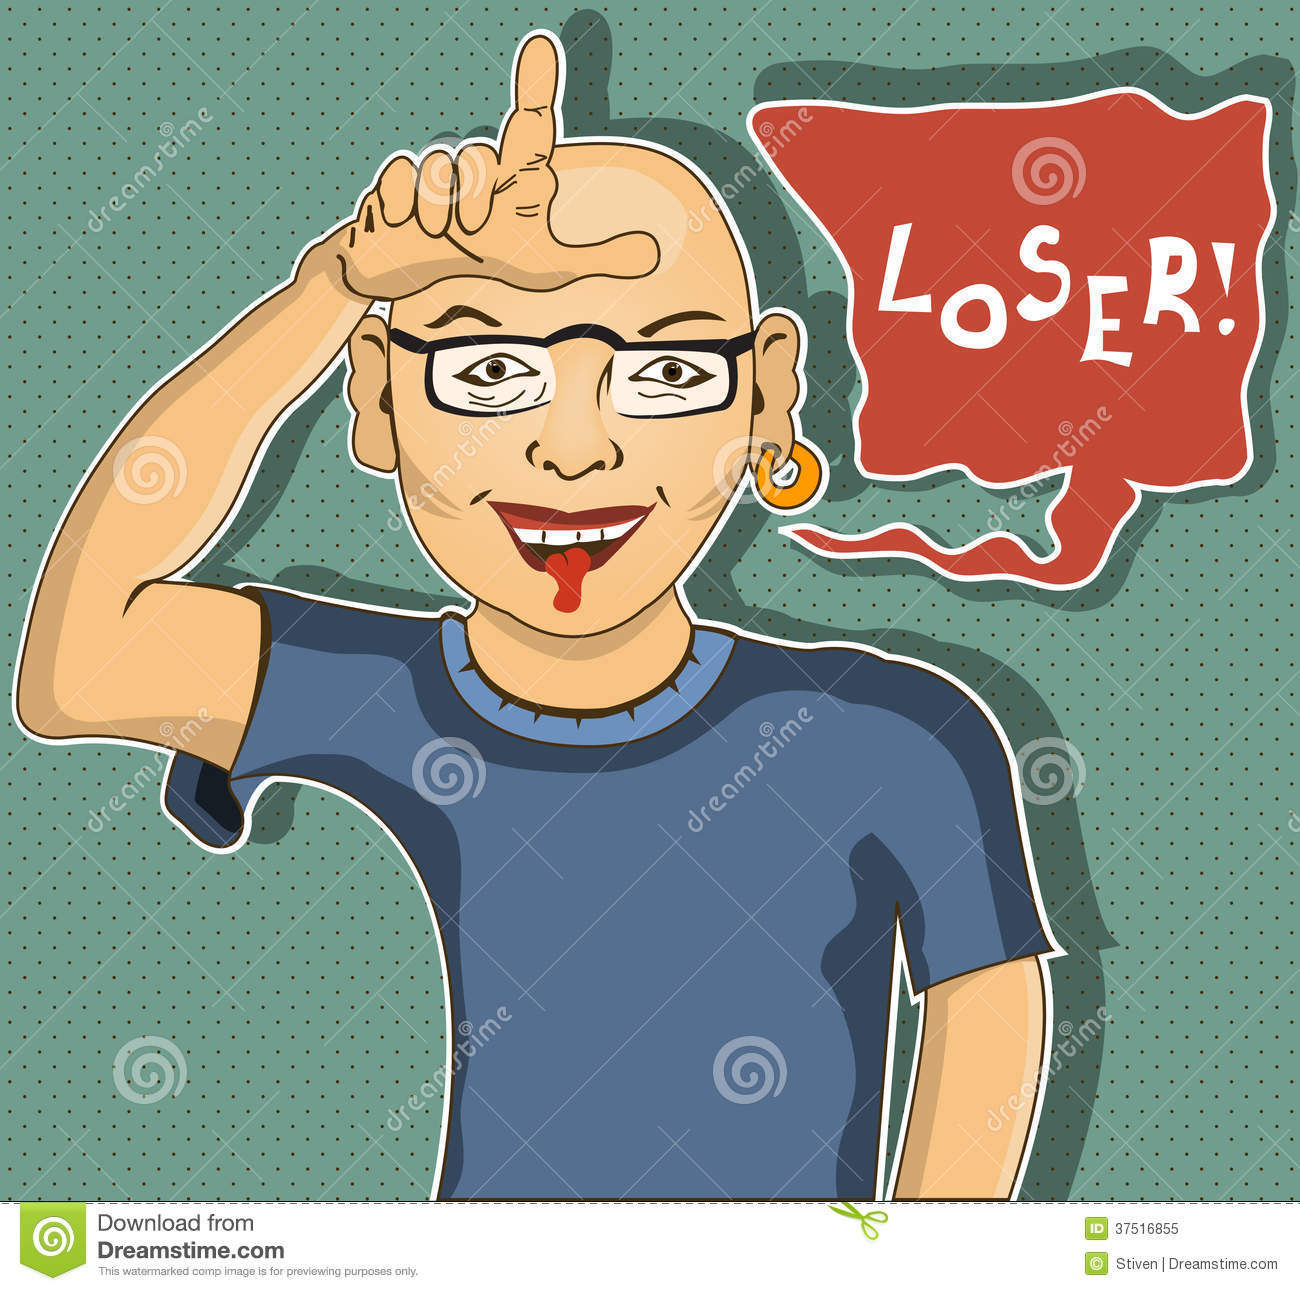 Man Is Showing Loser Hand Gesture   Cartoon Illustration